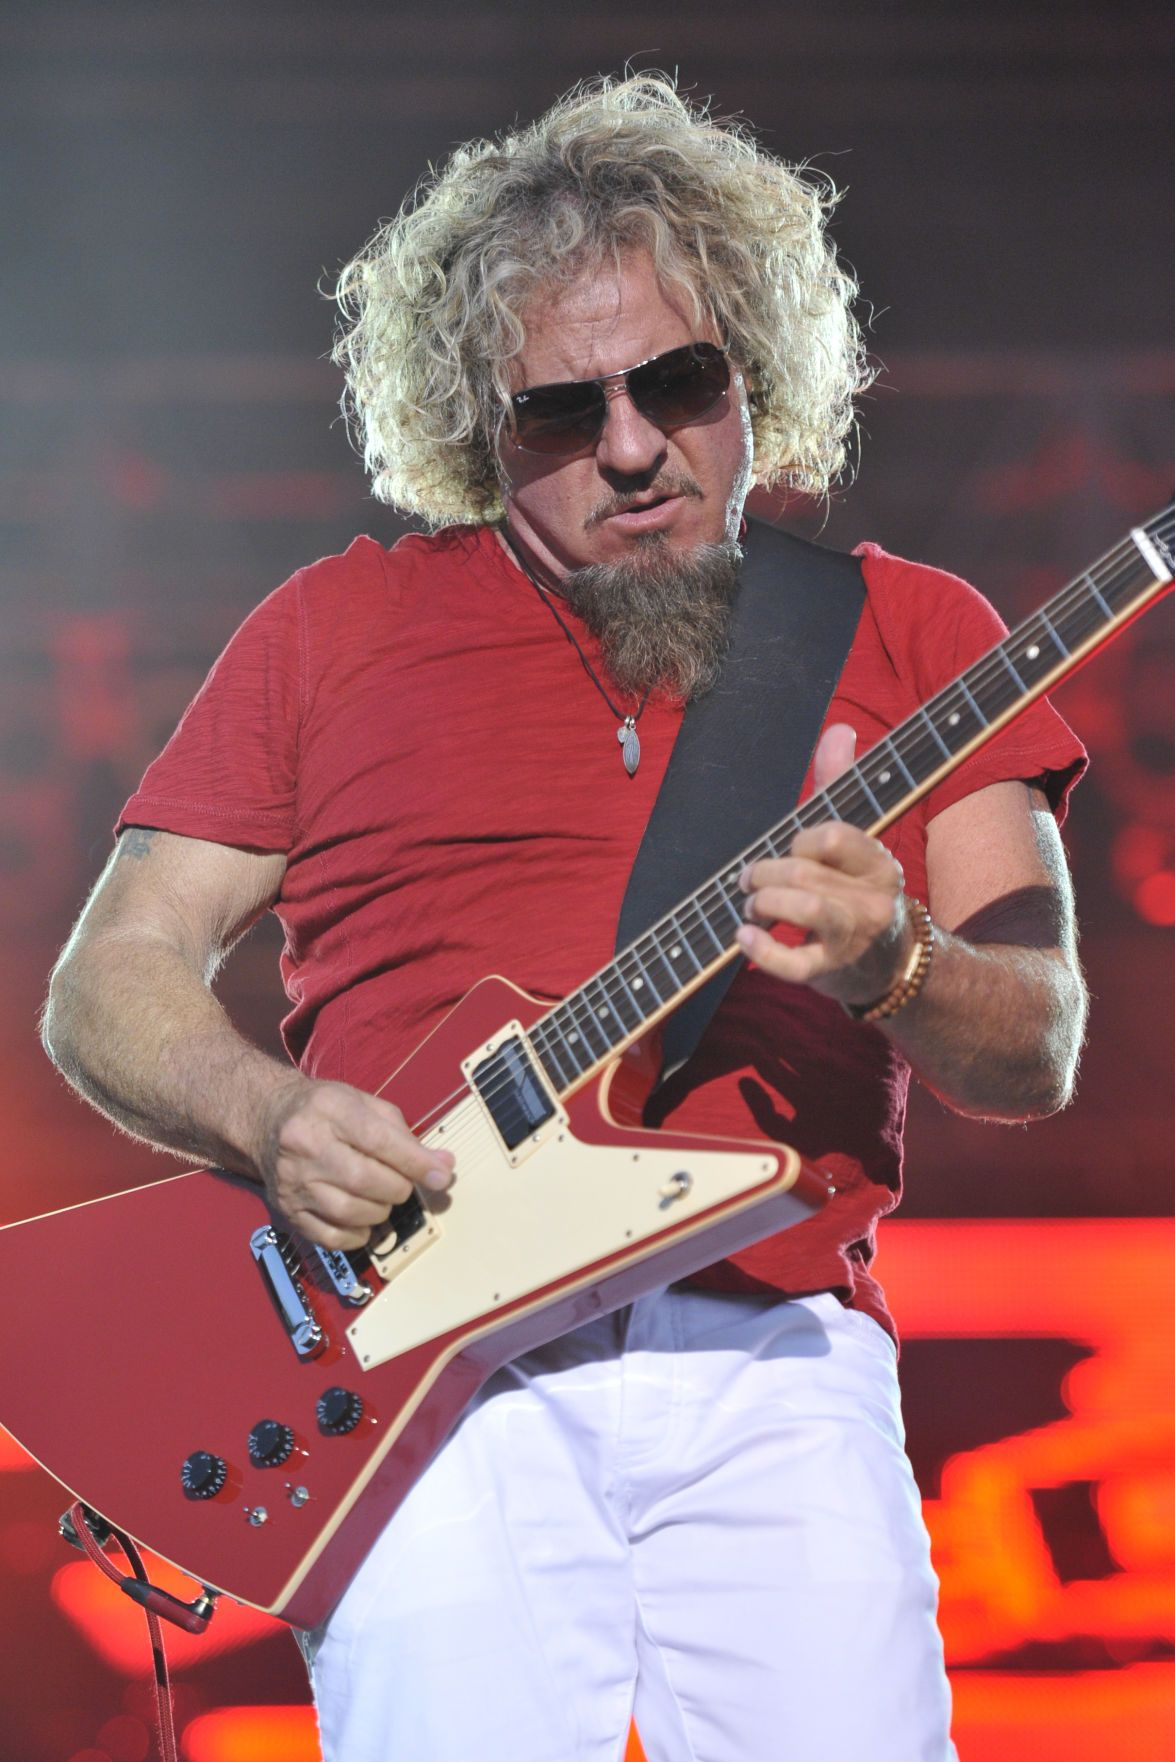 Concert Review Sammy Hagar Keeps On Rocking With Images Sammy Hagar Concert 8x10 Photo